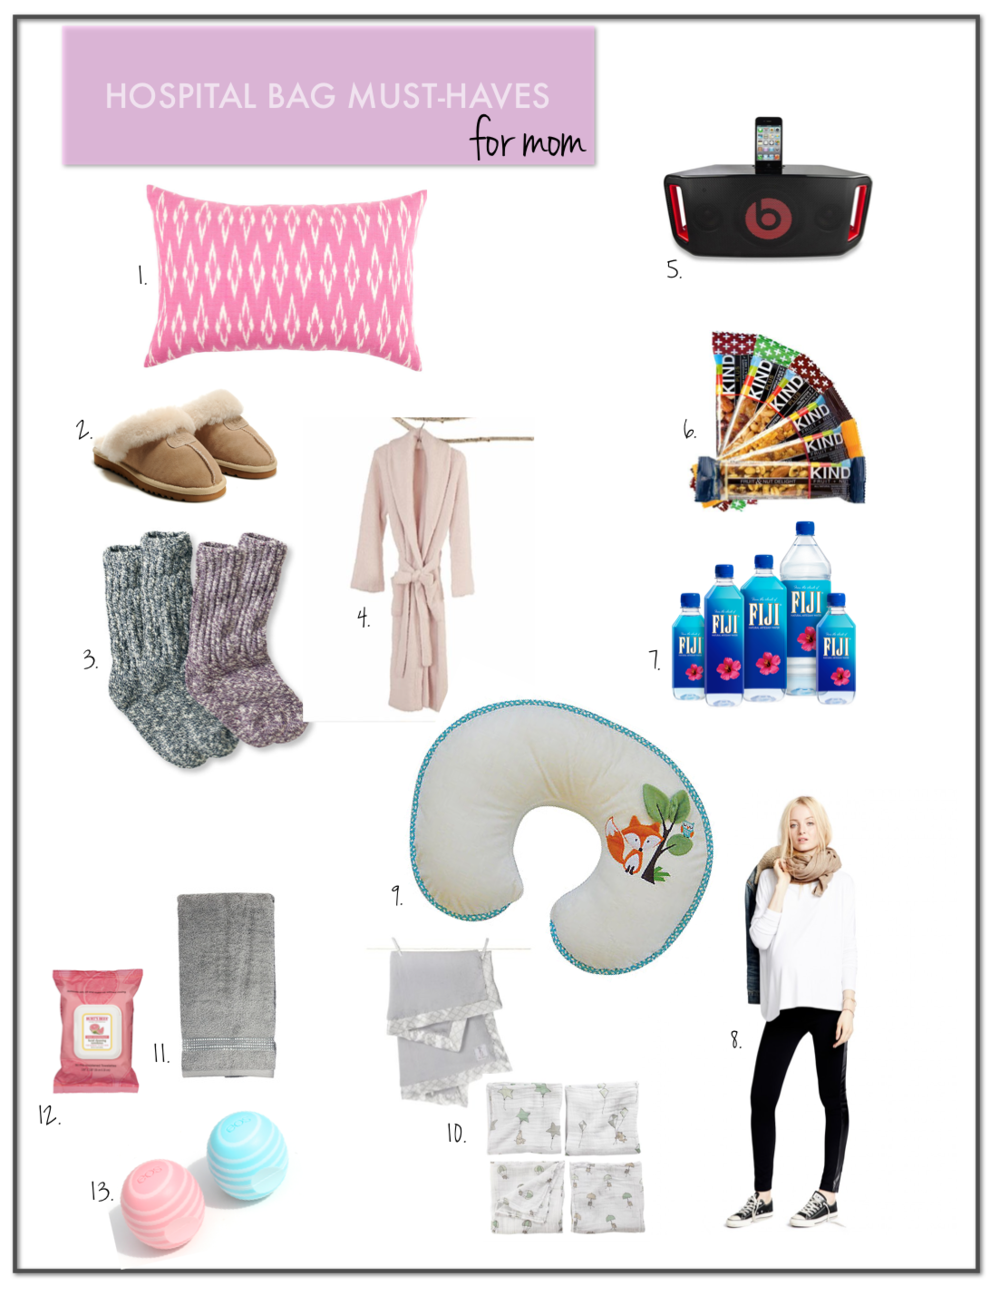 e7fe2ba812b58 Hospital Bag Must Haves: For Mom — Lilies And Lambs